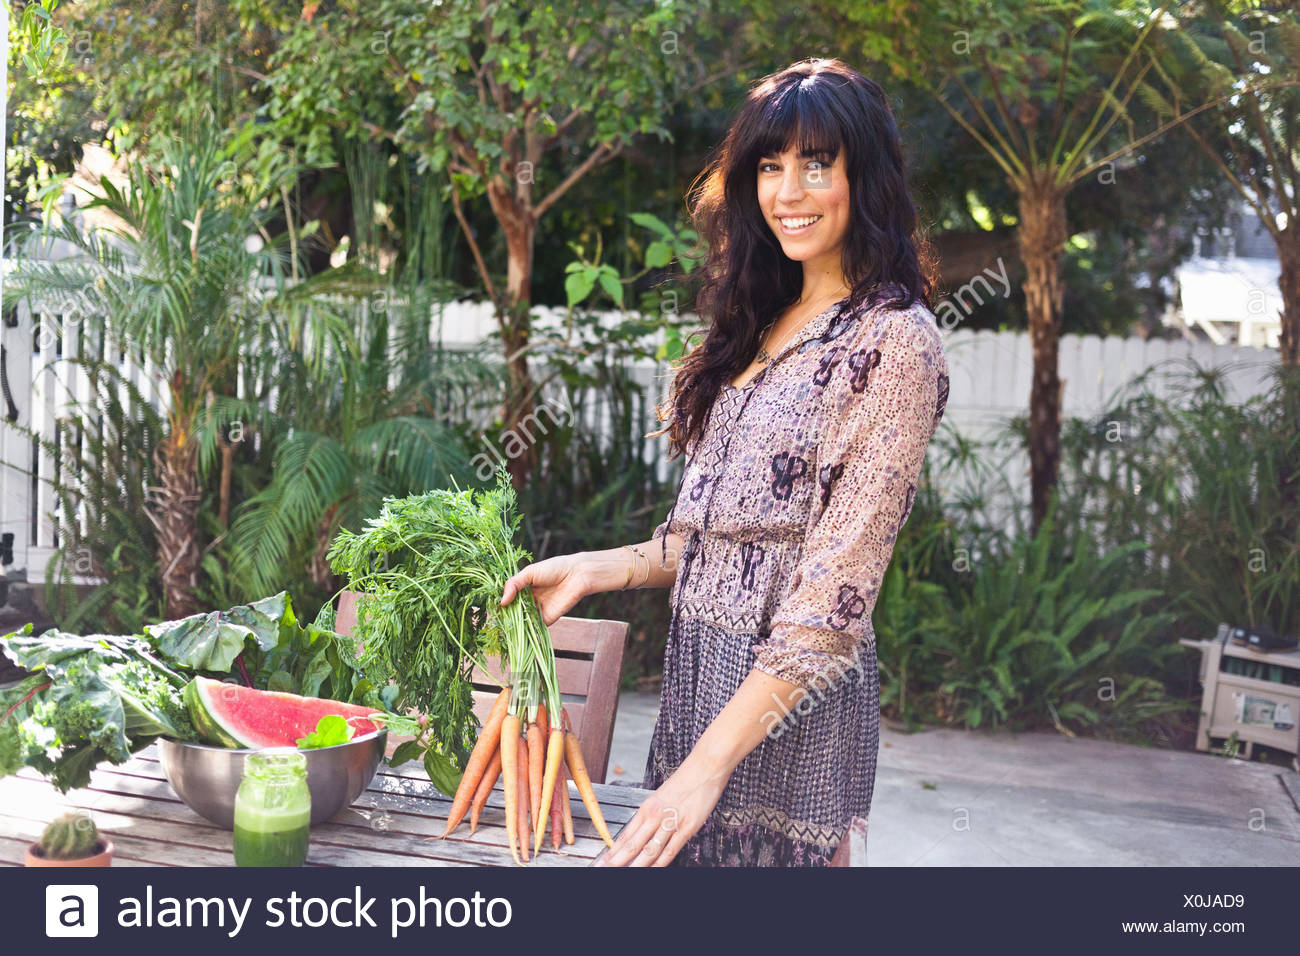 Portrait of young woman holding carrots - Stock Image